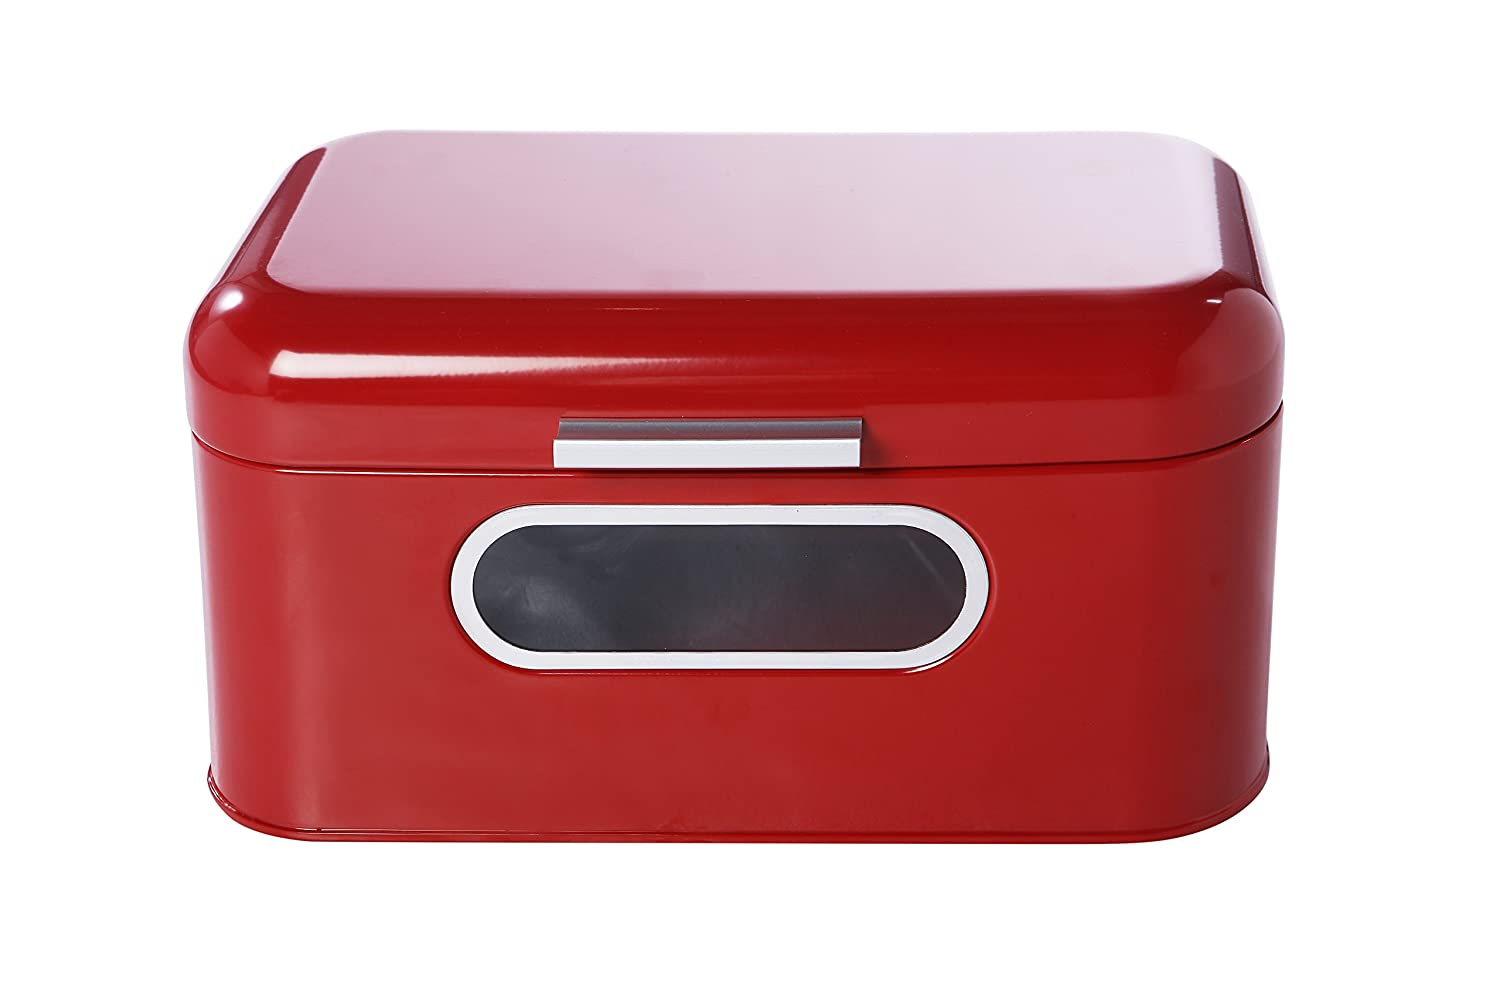 Bread Box for Kitchen Counter - Red Bread Bin, Retro Storage Container with Front Window, For Doughnuts, Pastries, Cookies - 12 x 7 x 6 Inches Juvale COMIN18JU039095